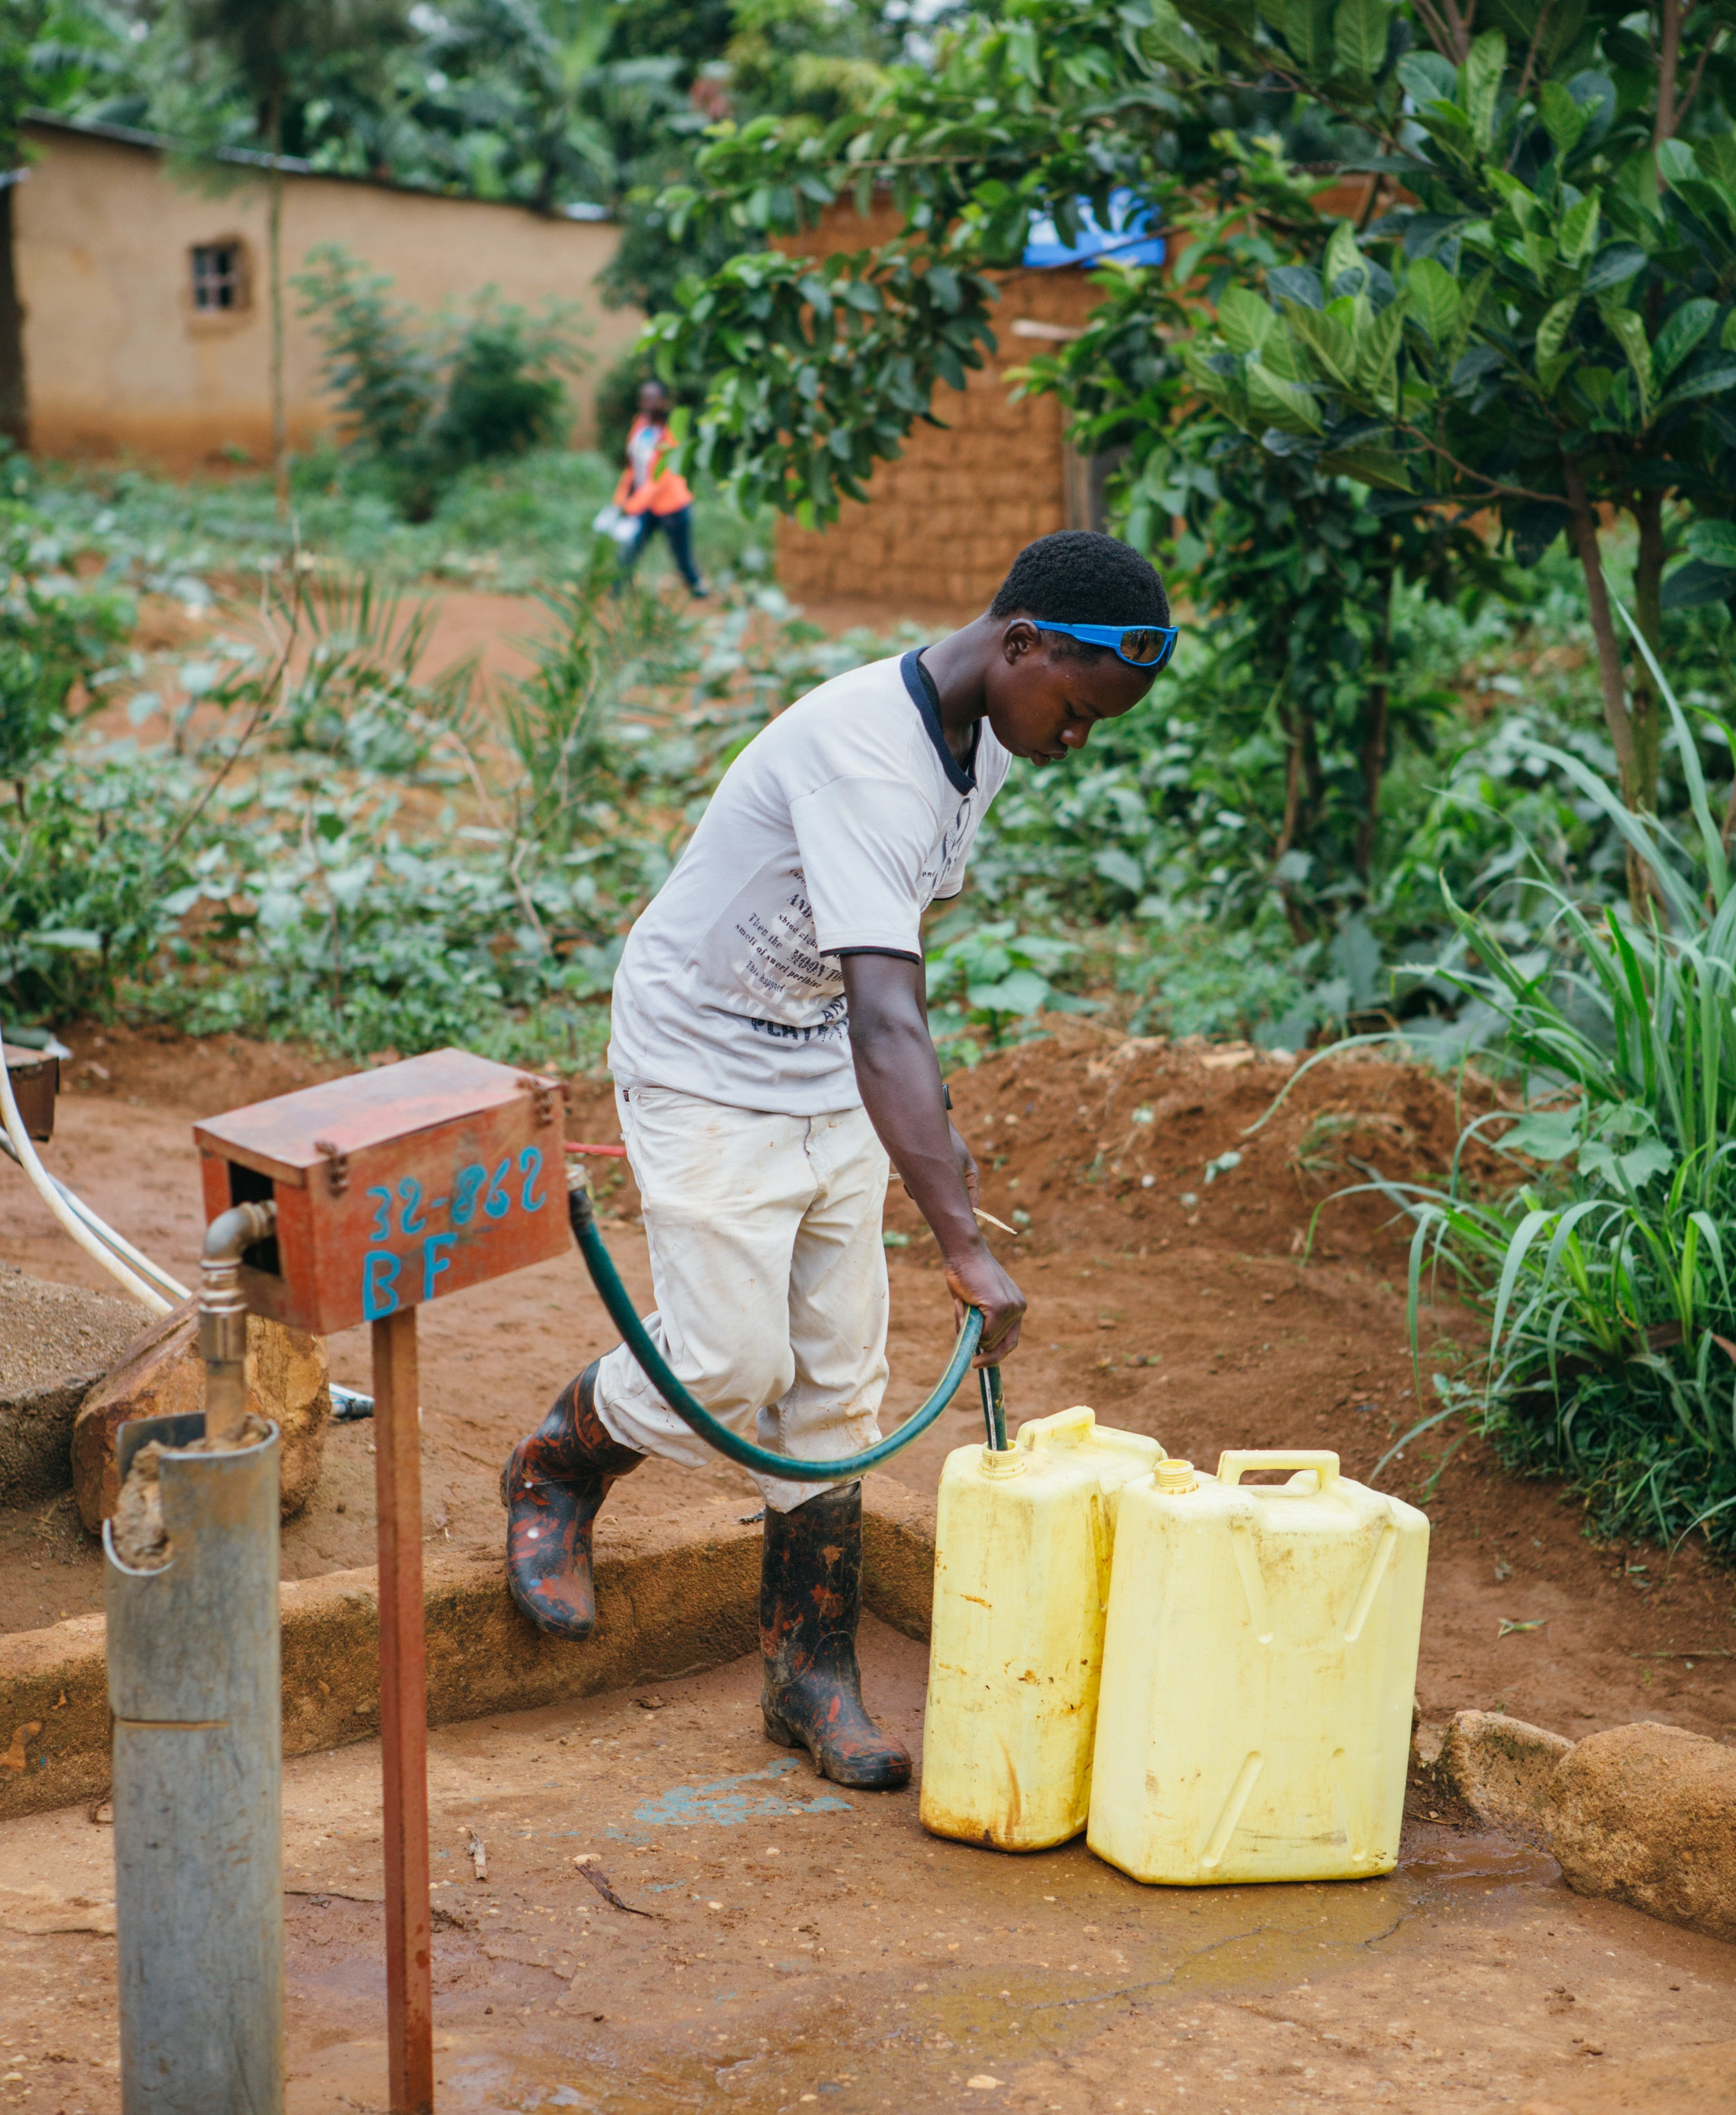 The Osprey Foundation supports Water for People, an organization that promotes the development of high-quality water and sanitation services that are accessible to all. Photo courtesy of Water for People.